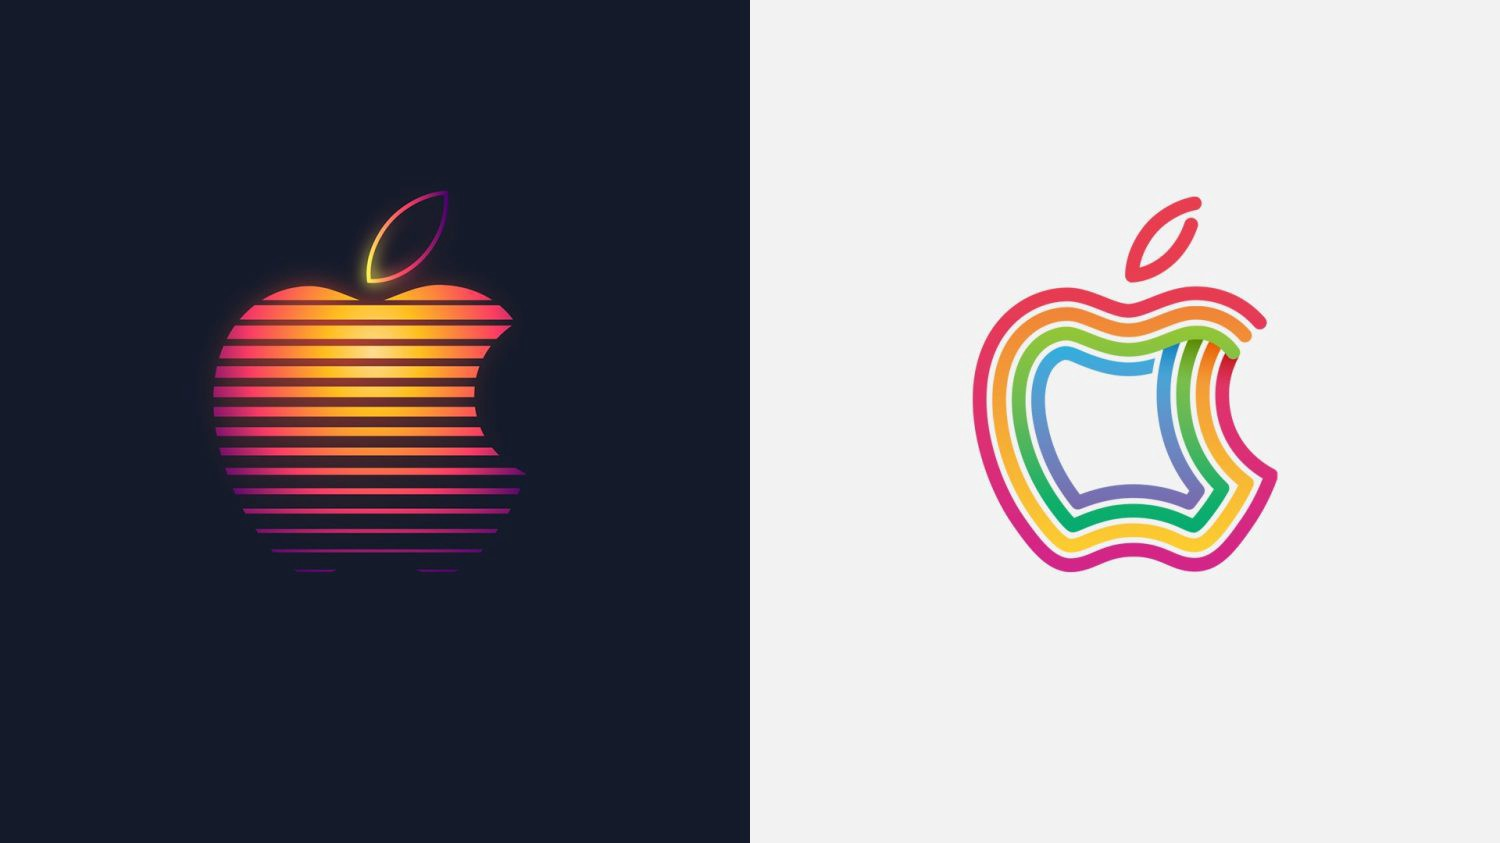 Two Apple Computer logos side-by-side, each stylized a different way.